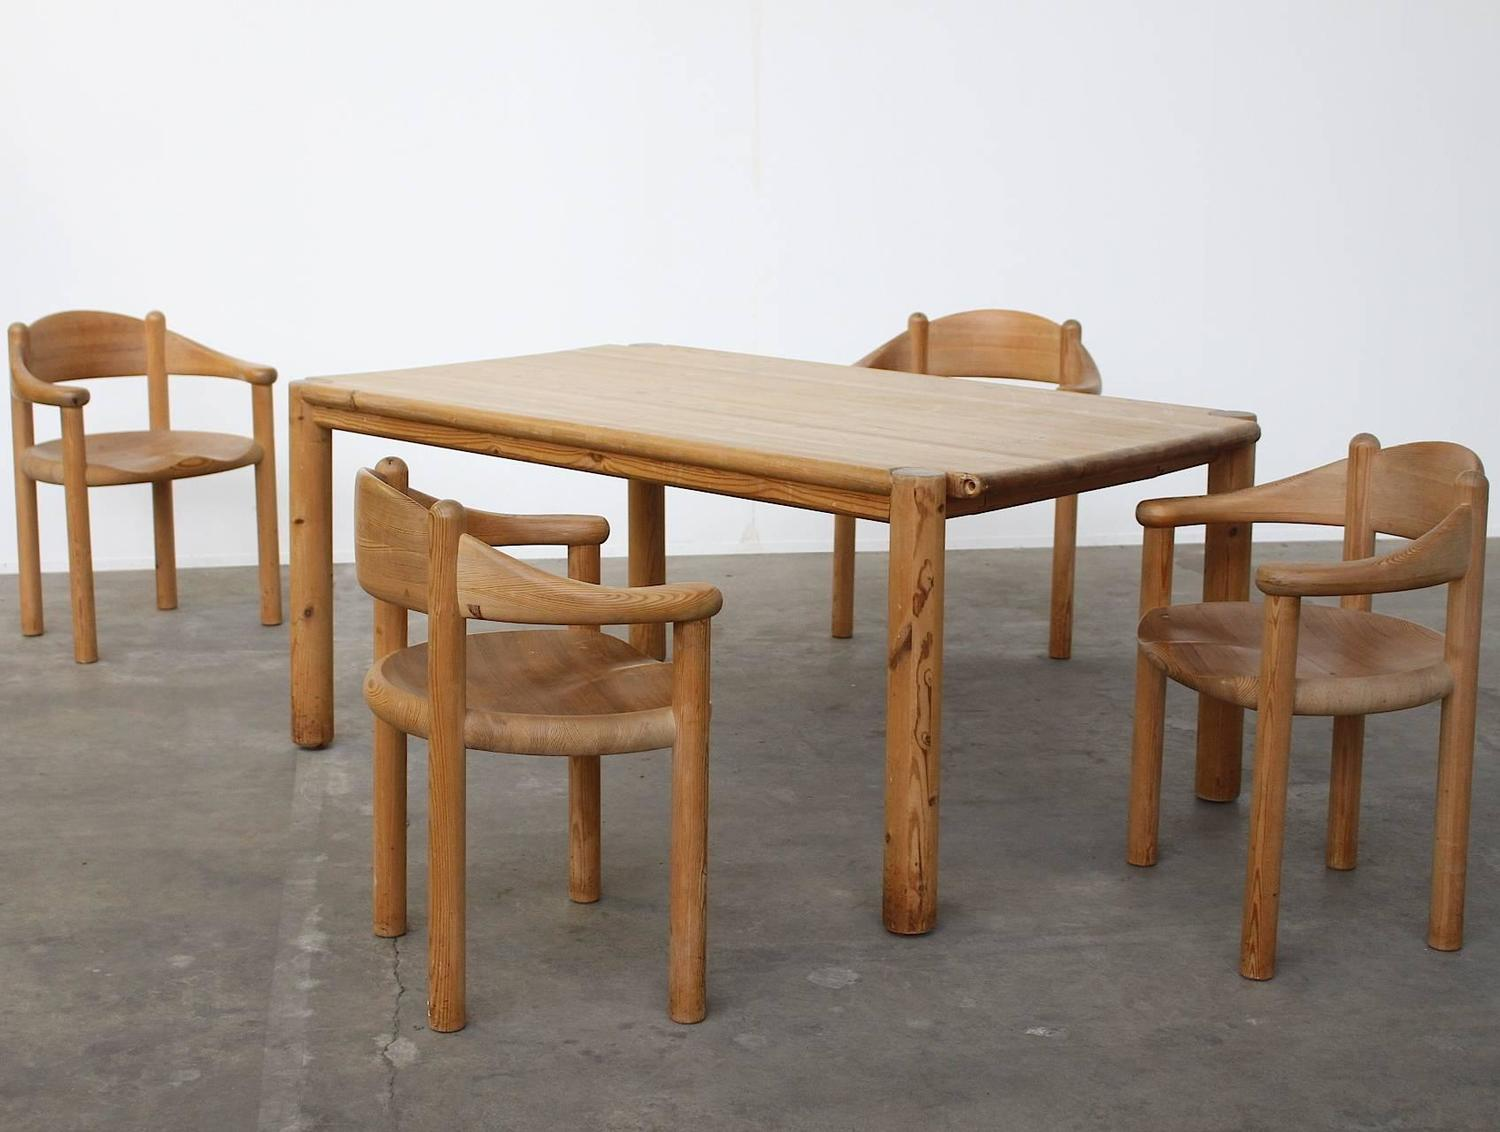 Pine Dining Table Set: Rare Rainer Daumiller Pine Dining Set Of A Table And Four